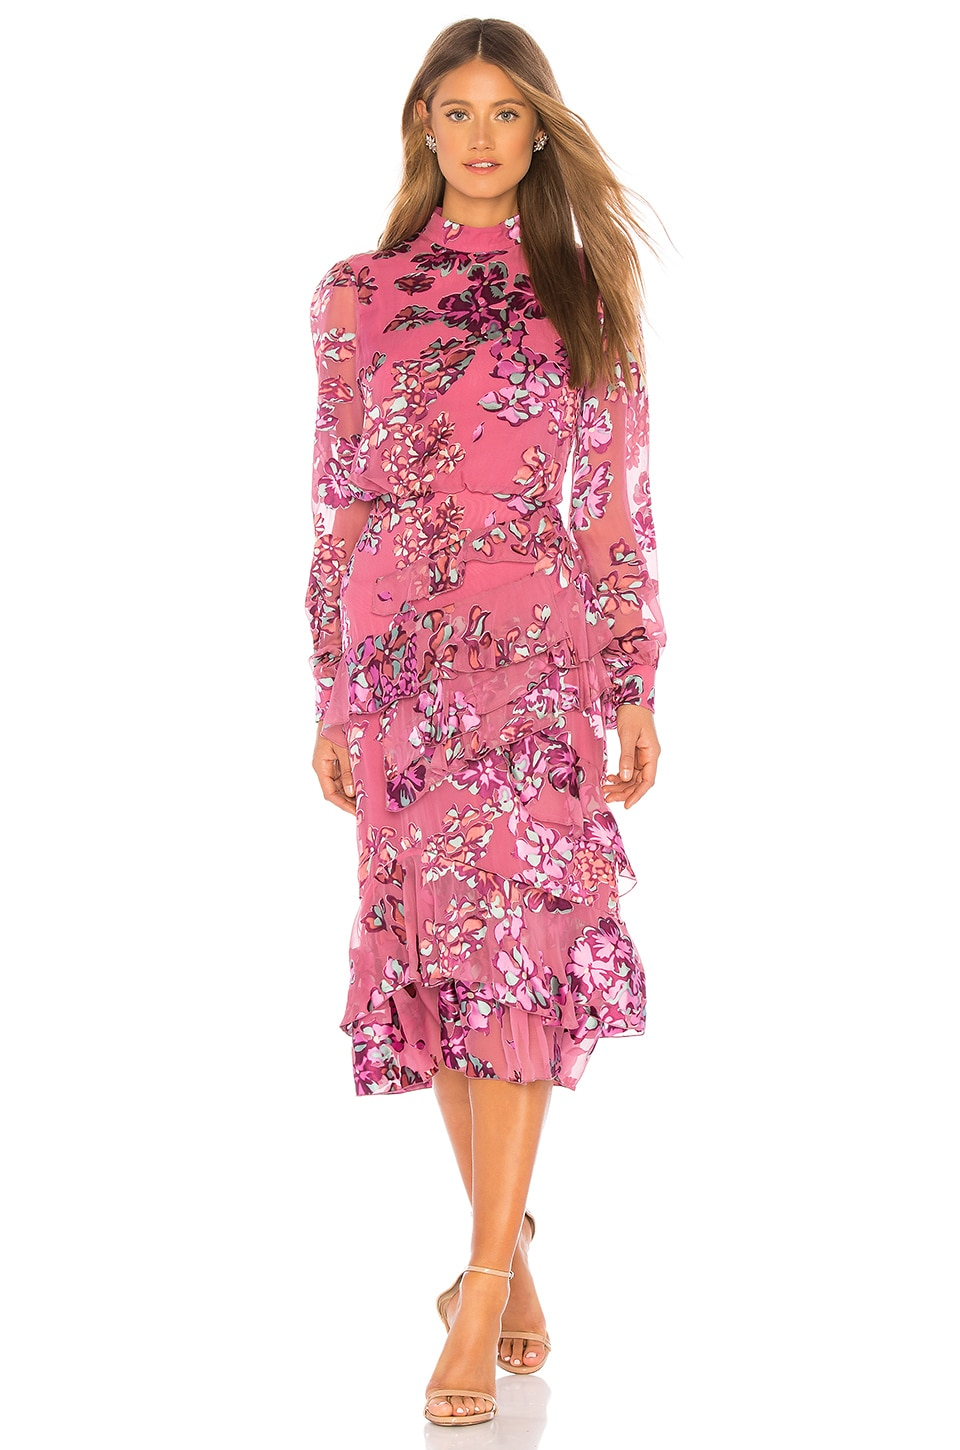 SALONI Isa Ruffle Dress in Pink Insignia